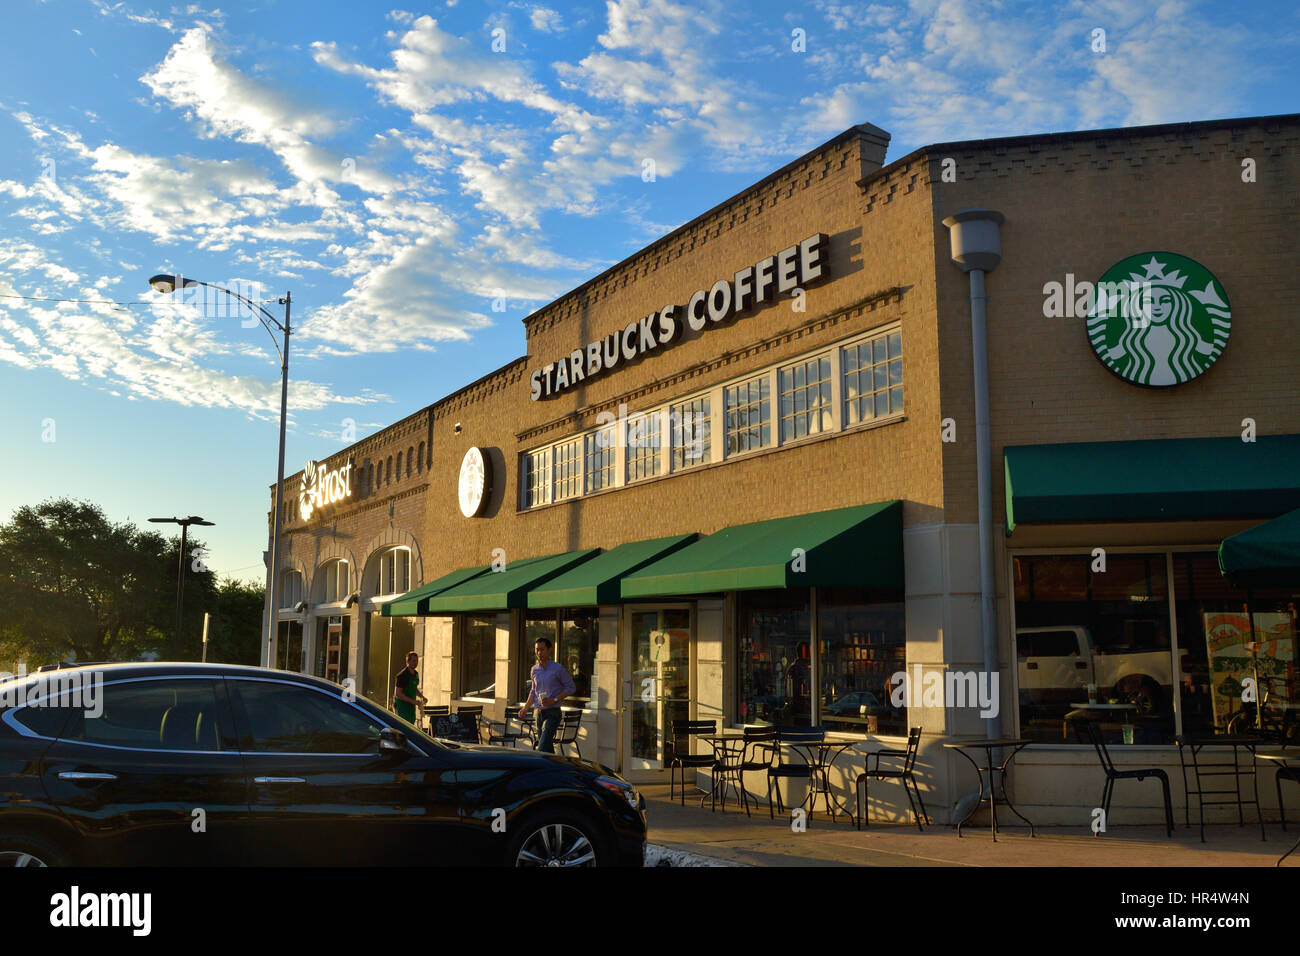 Starbucks Store in the Lakewood area of Dallas, Texas - Stock Image